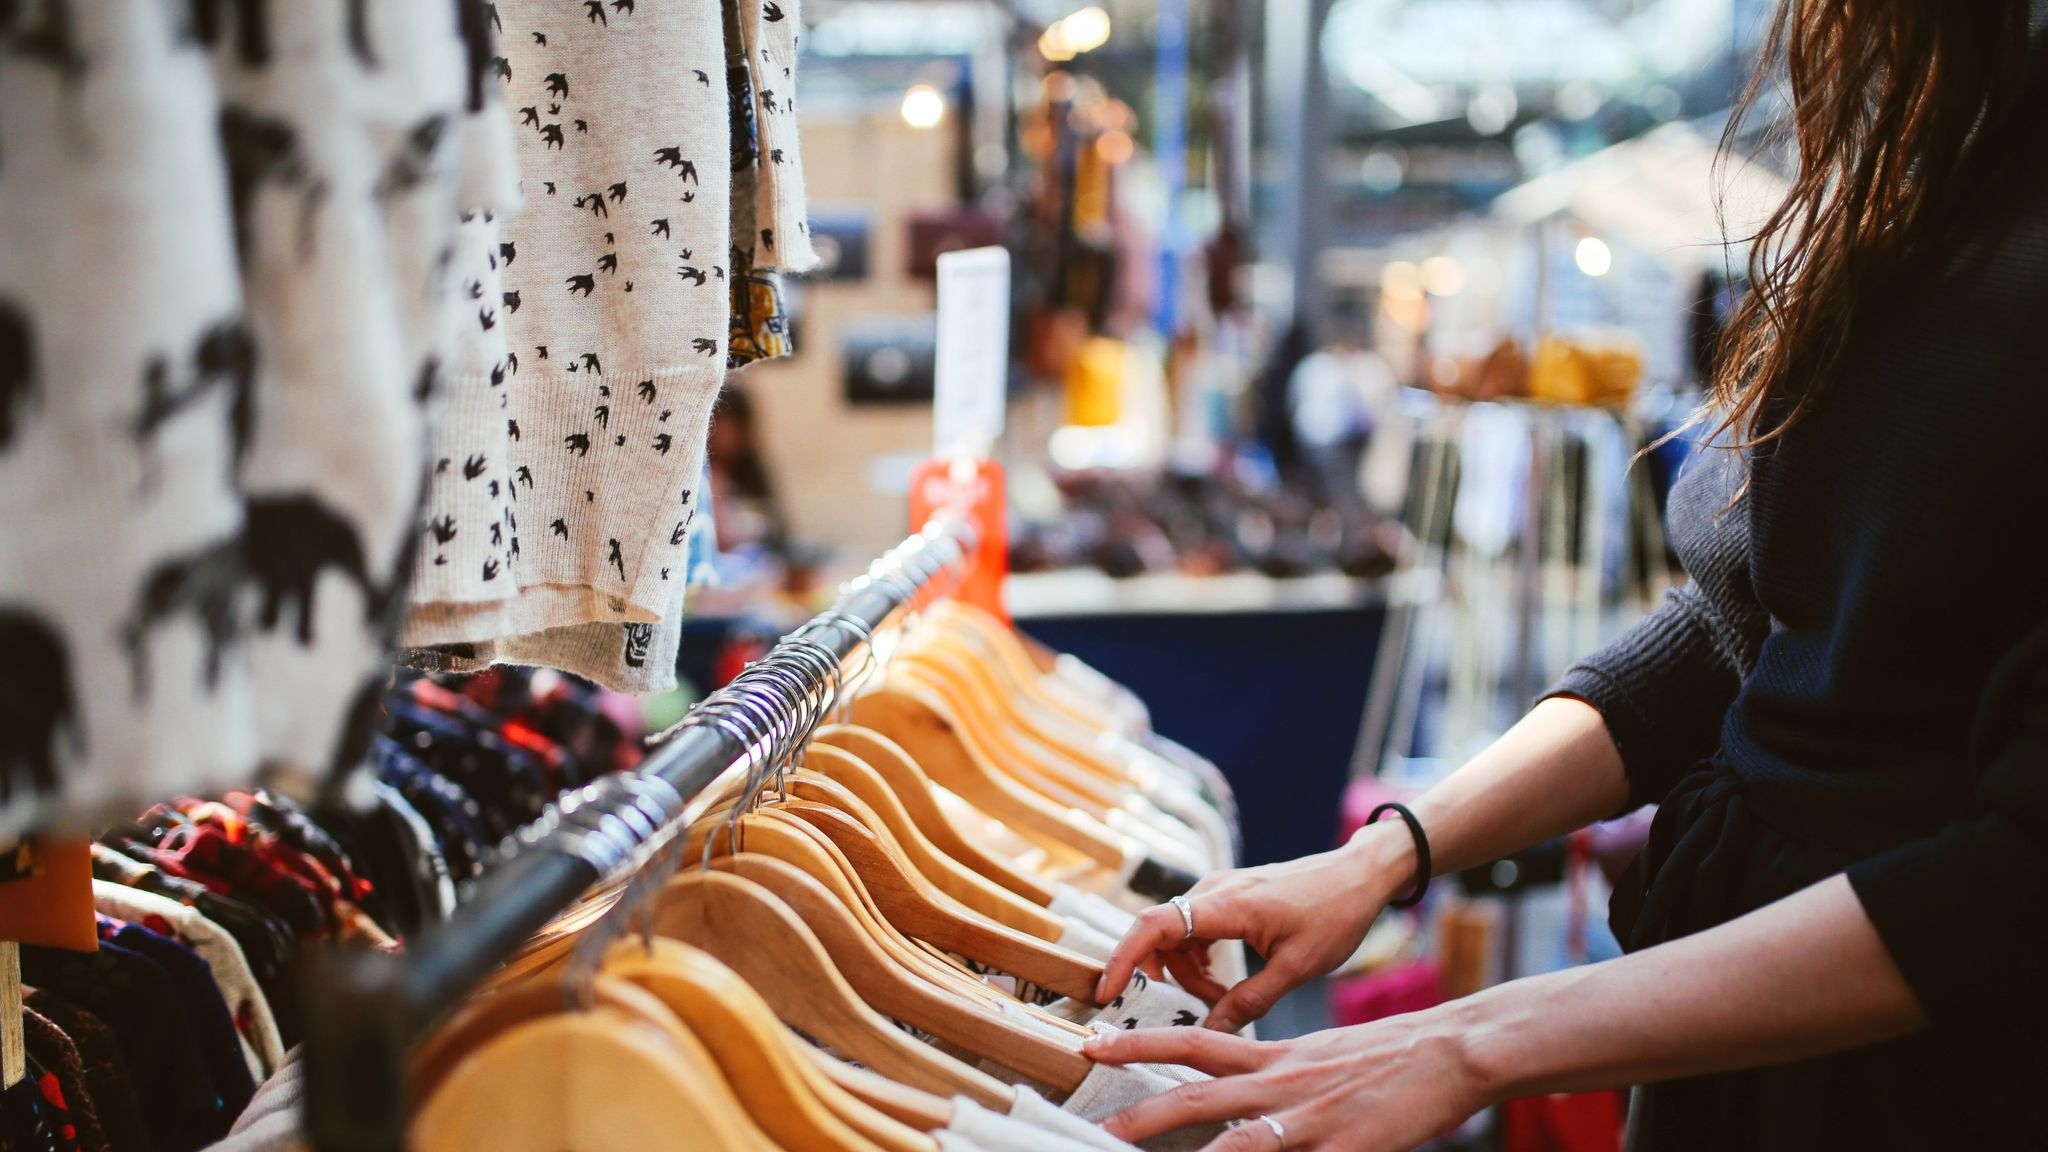 Big brands face pressure over fast fashion's impact